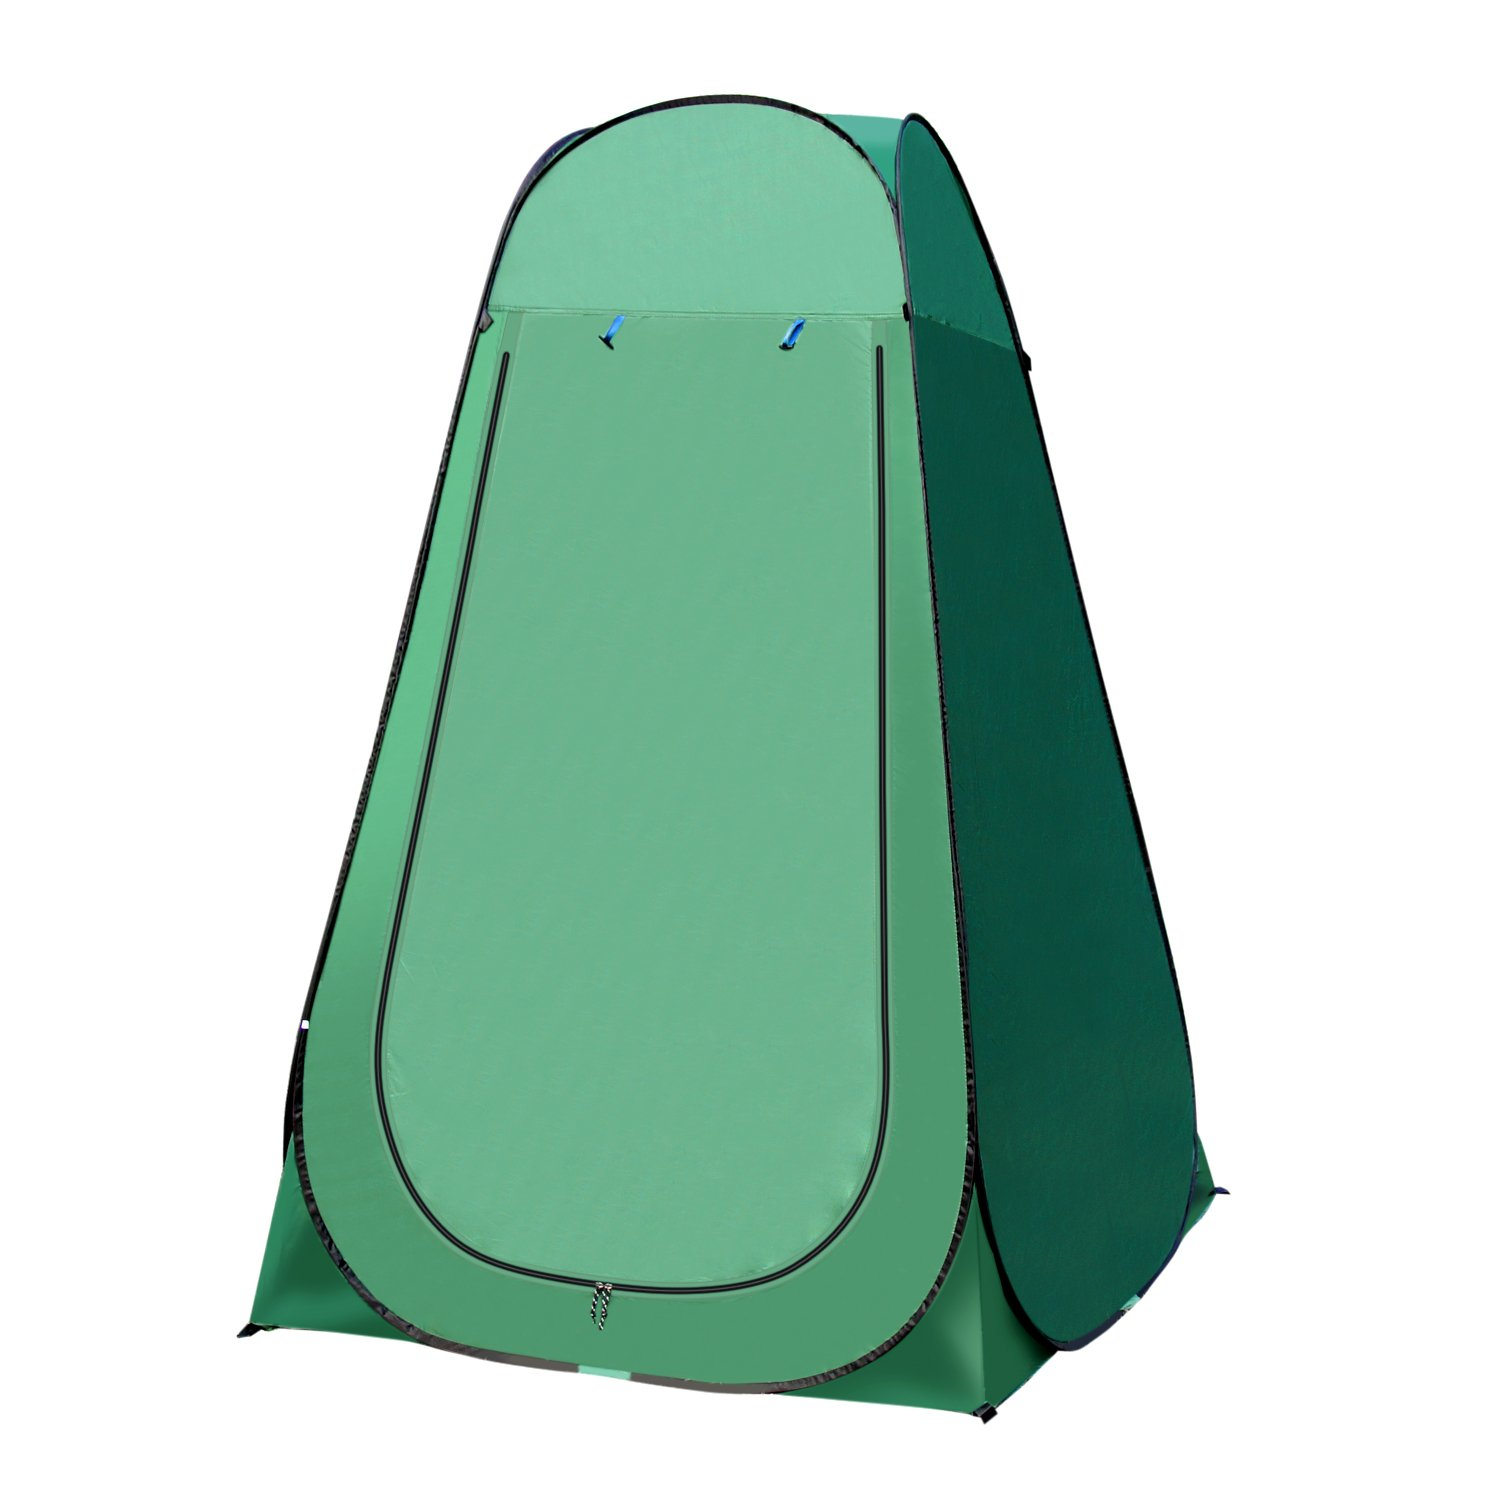 OutTopper Pop Up Camping Shower Tent,Waterproof Portable Toilet Changing Dressing Room Shelter with Carry Bag by Out Topper